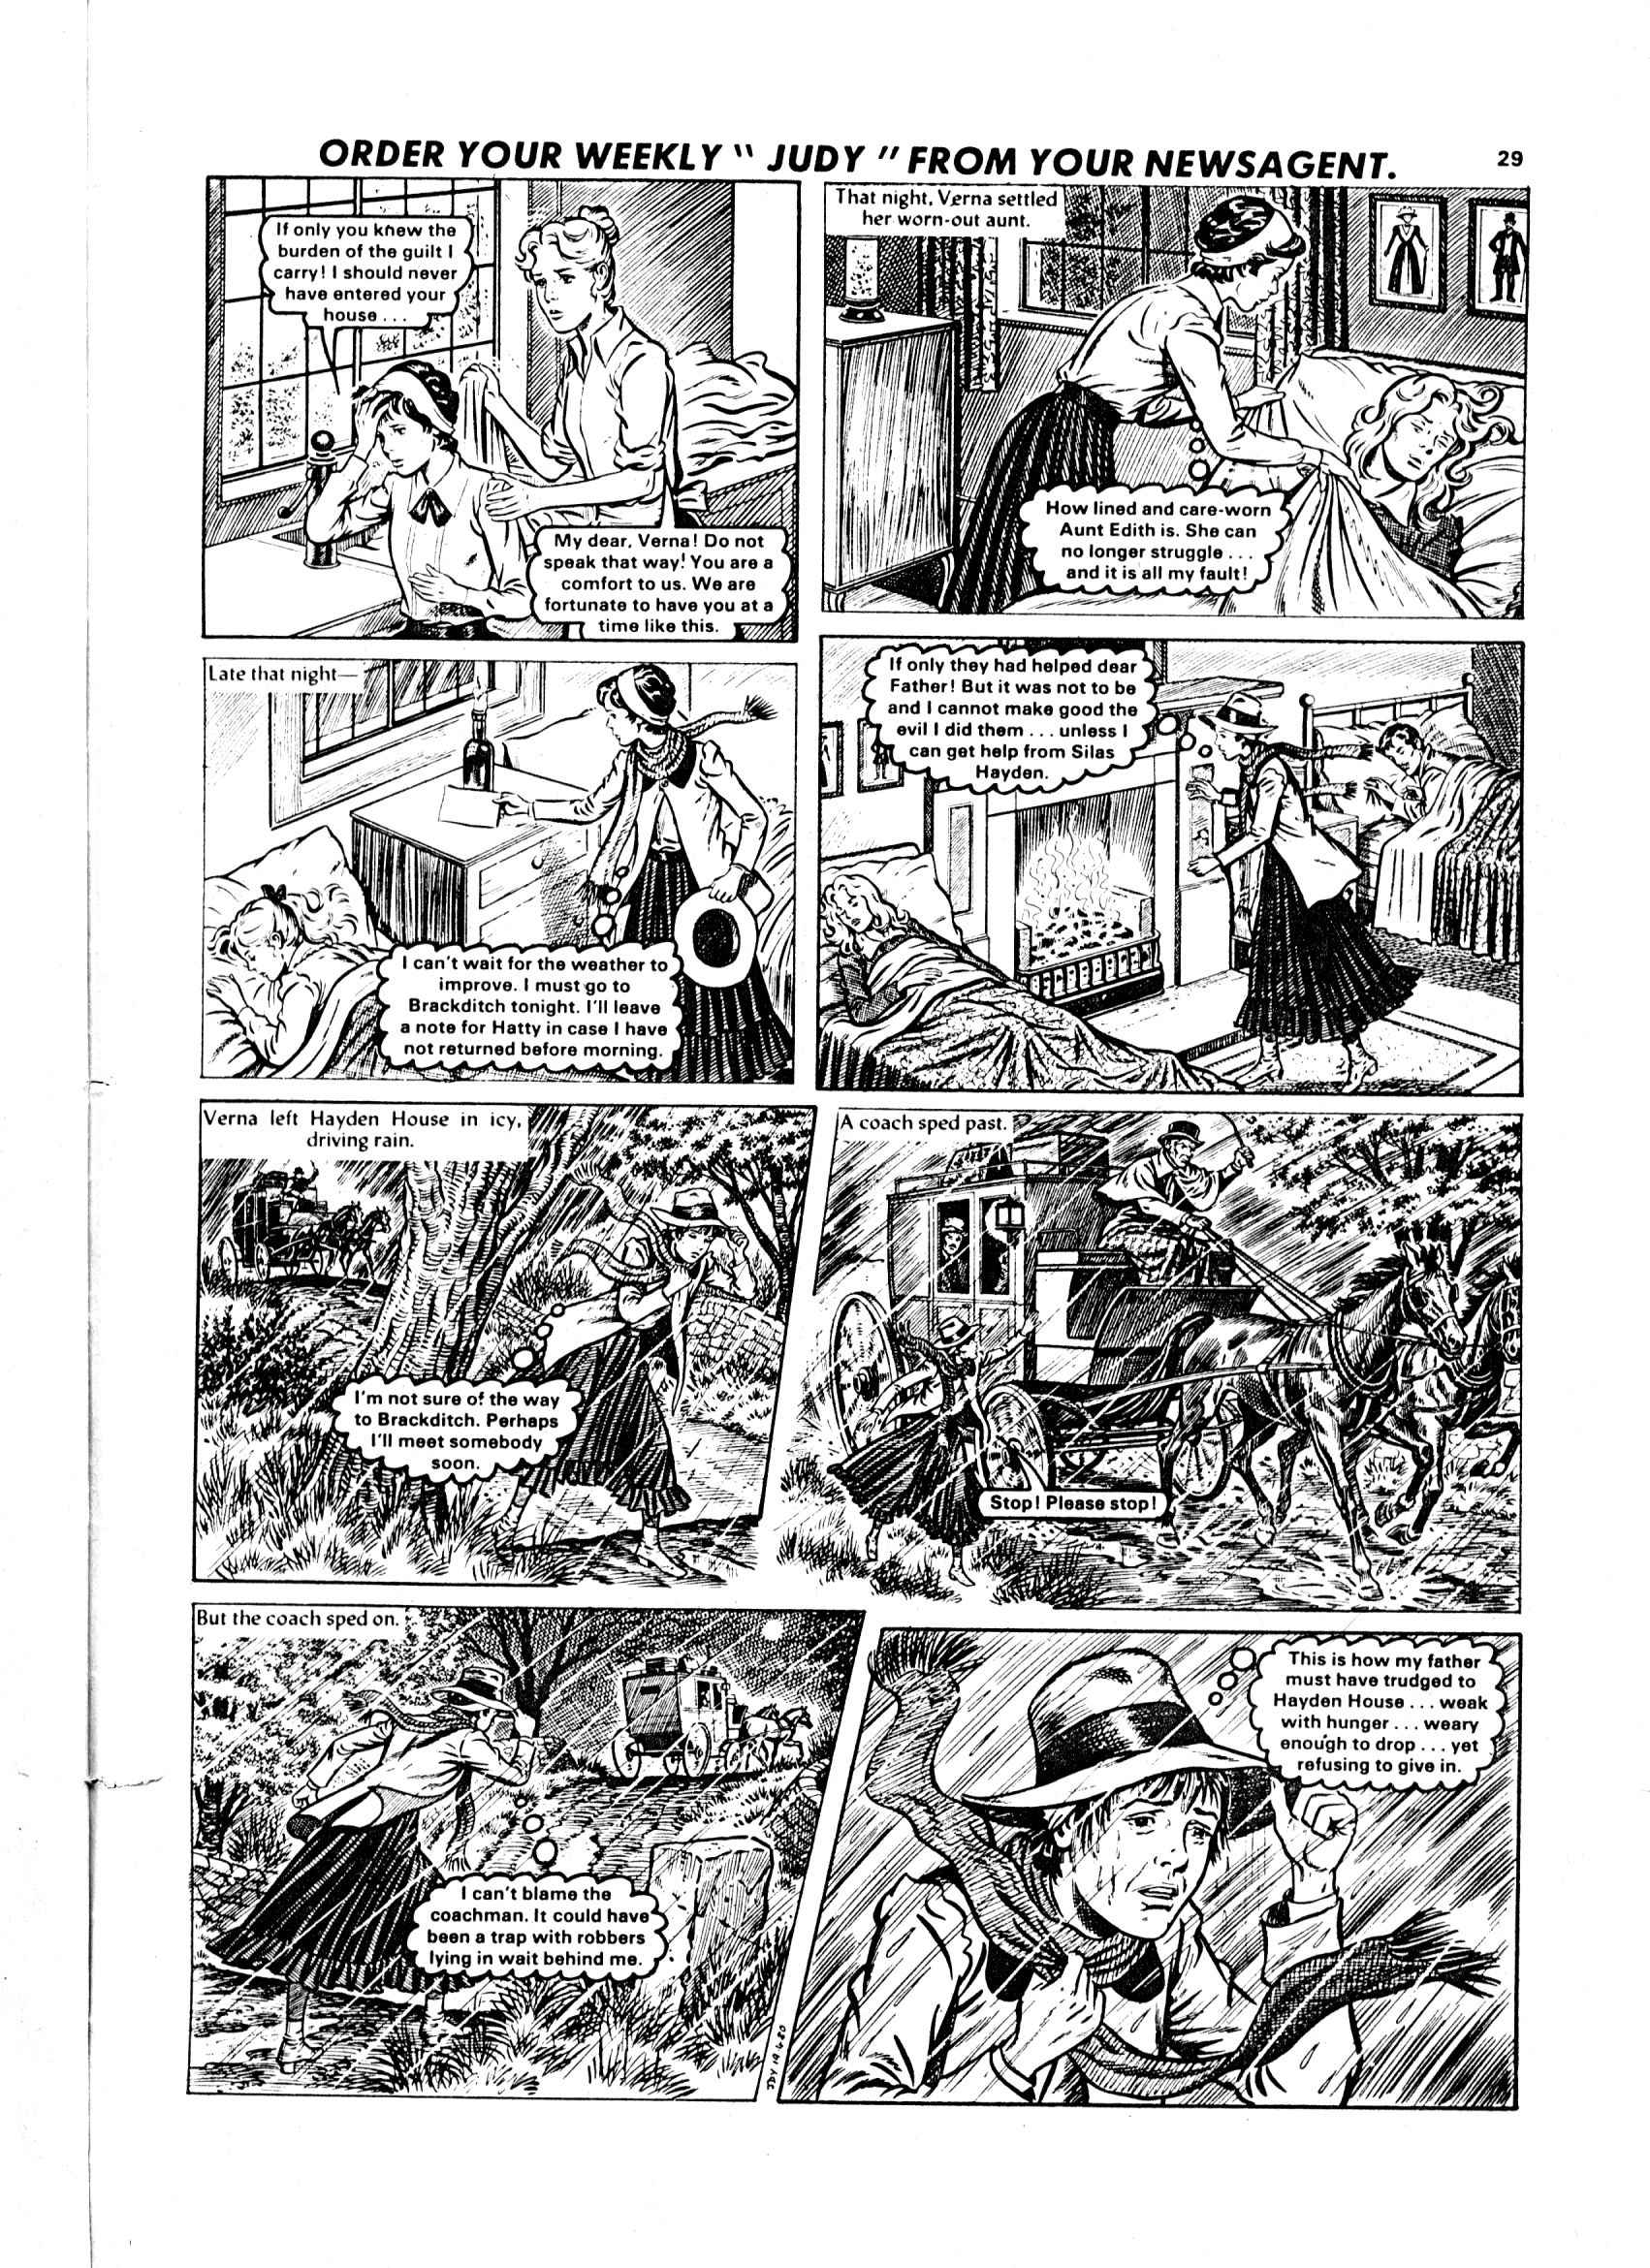 Read online Judy comic -  Issue #58 - 29